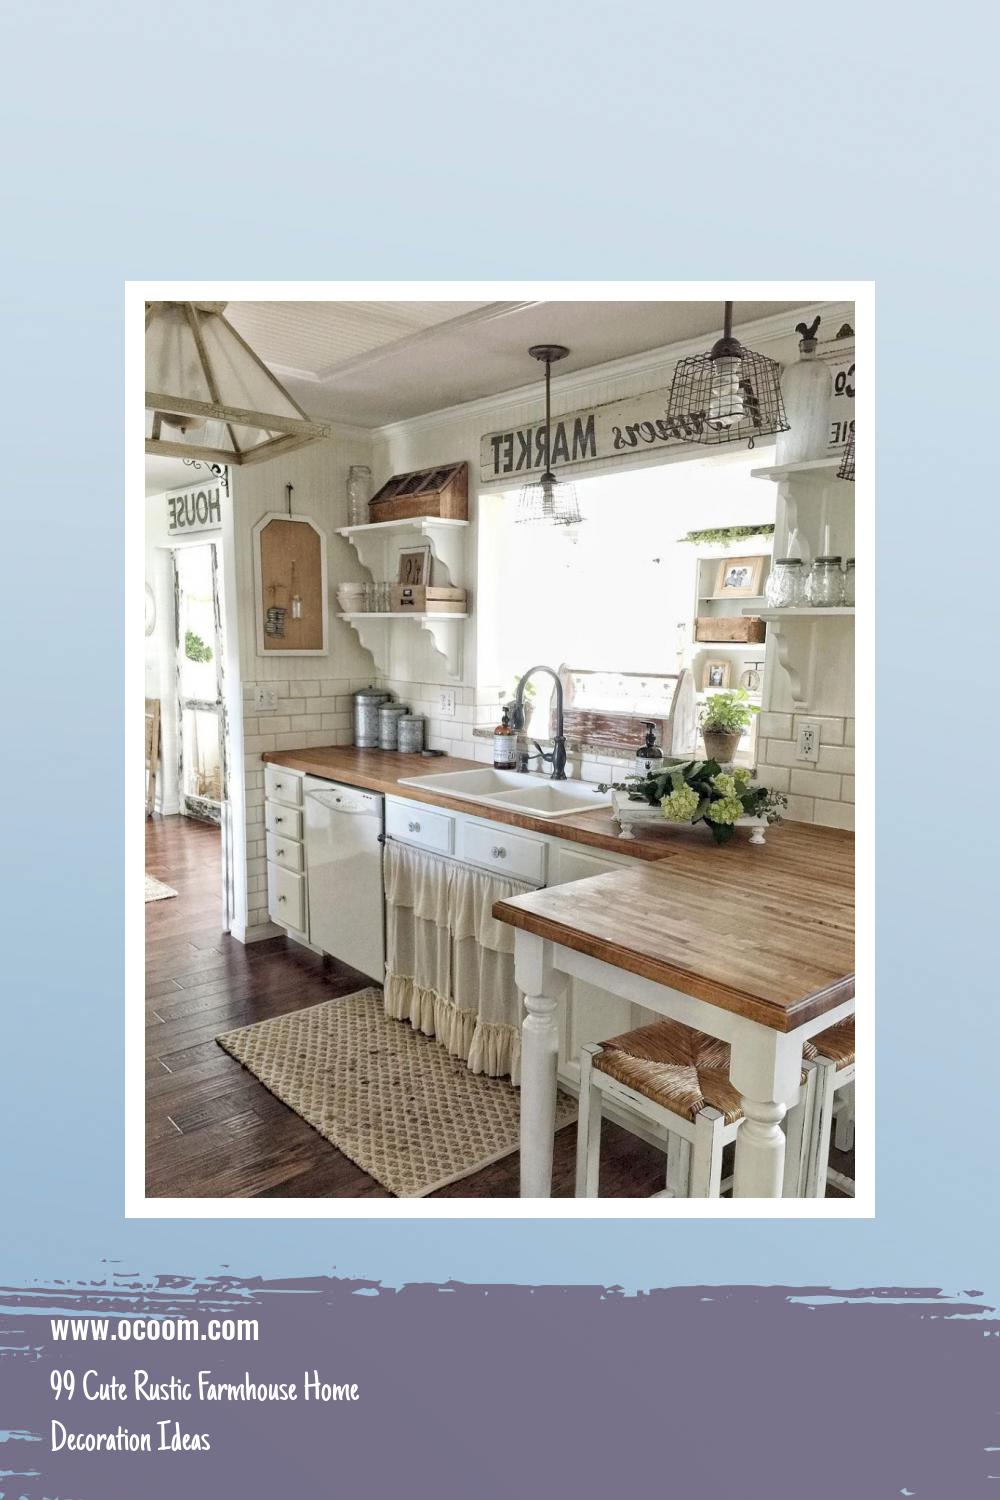 99 Cute Rustic Farmhouse Home Decoration Ideas 13